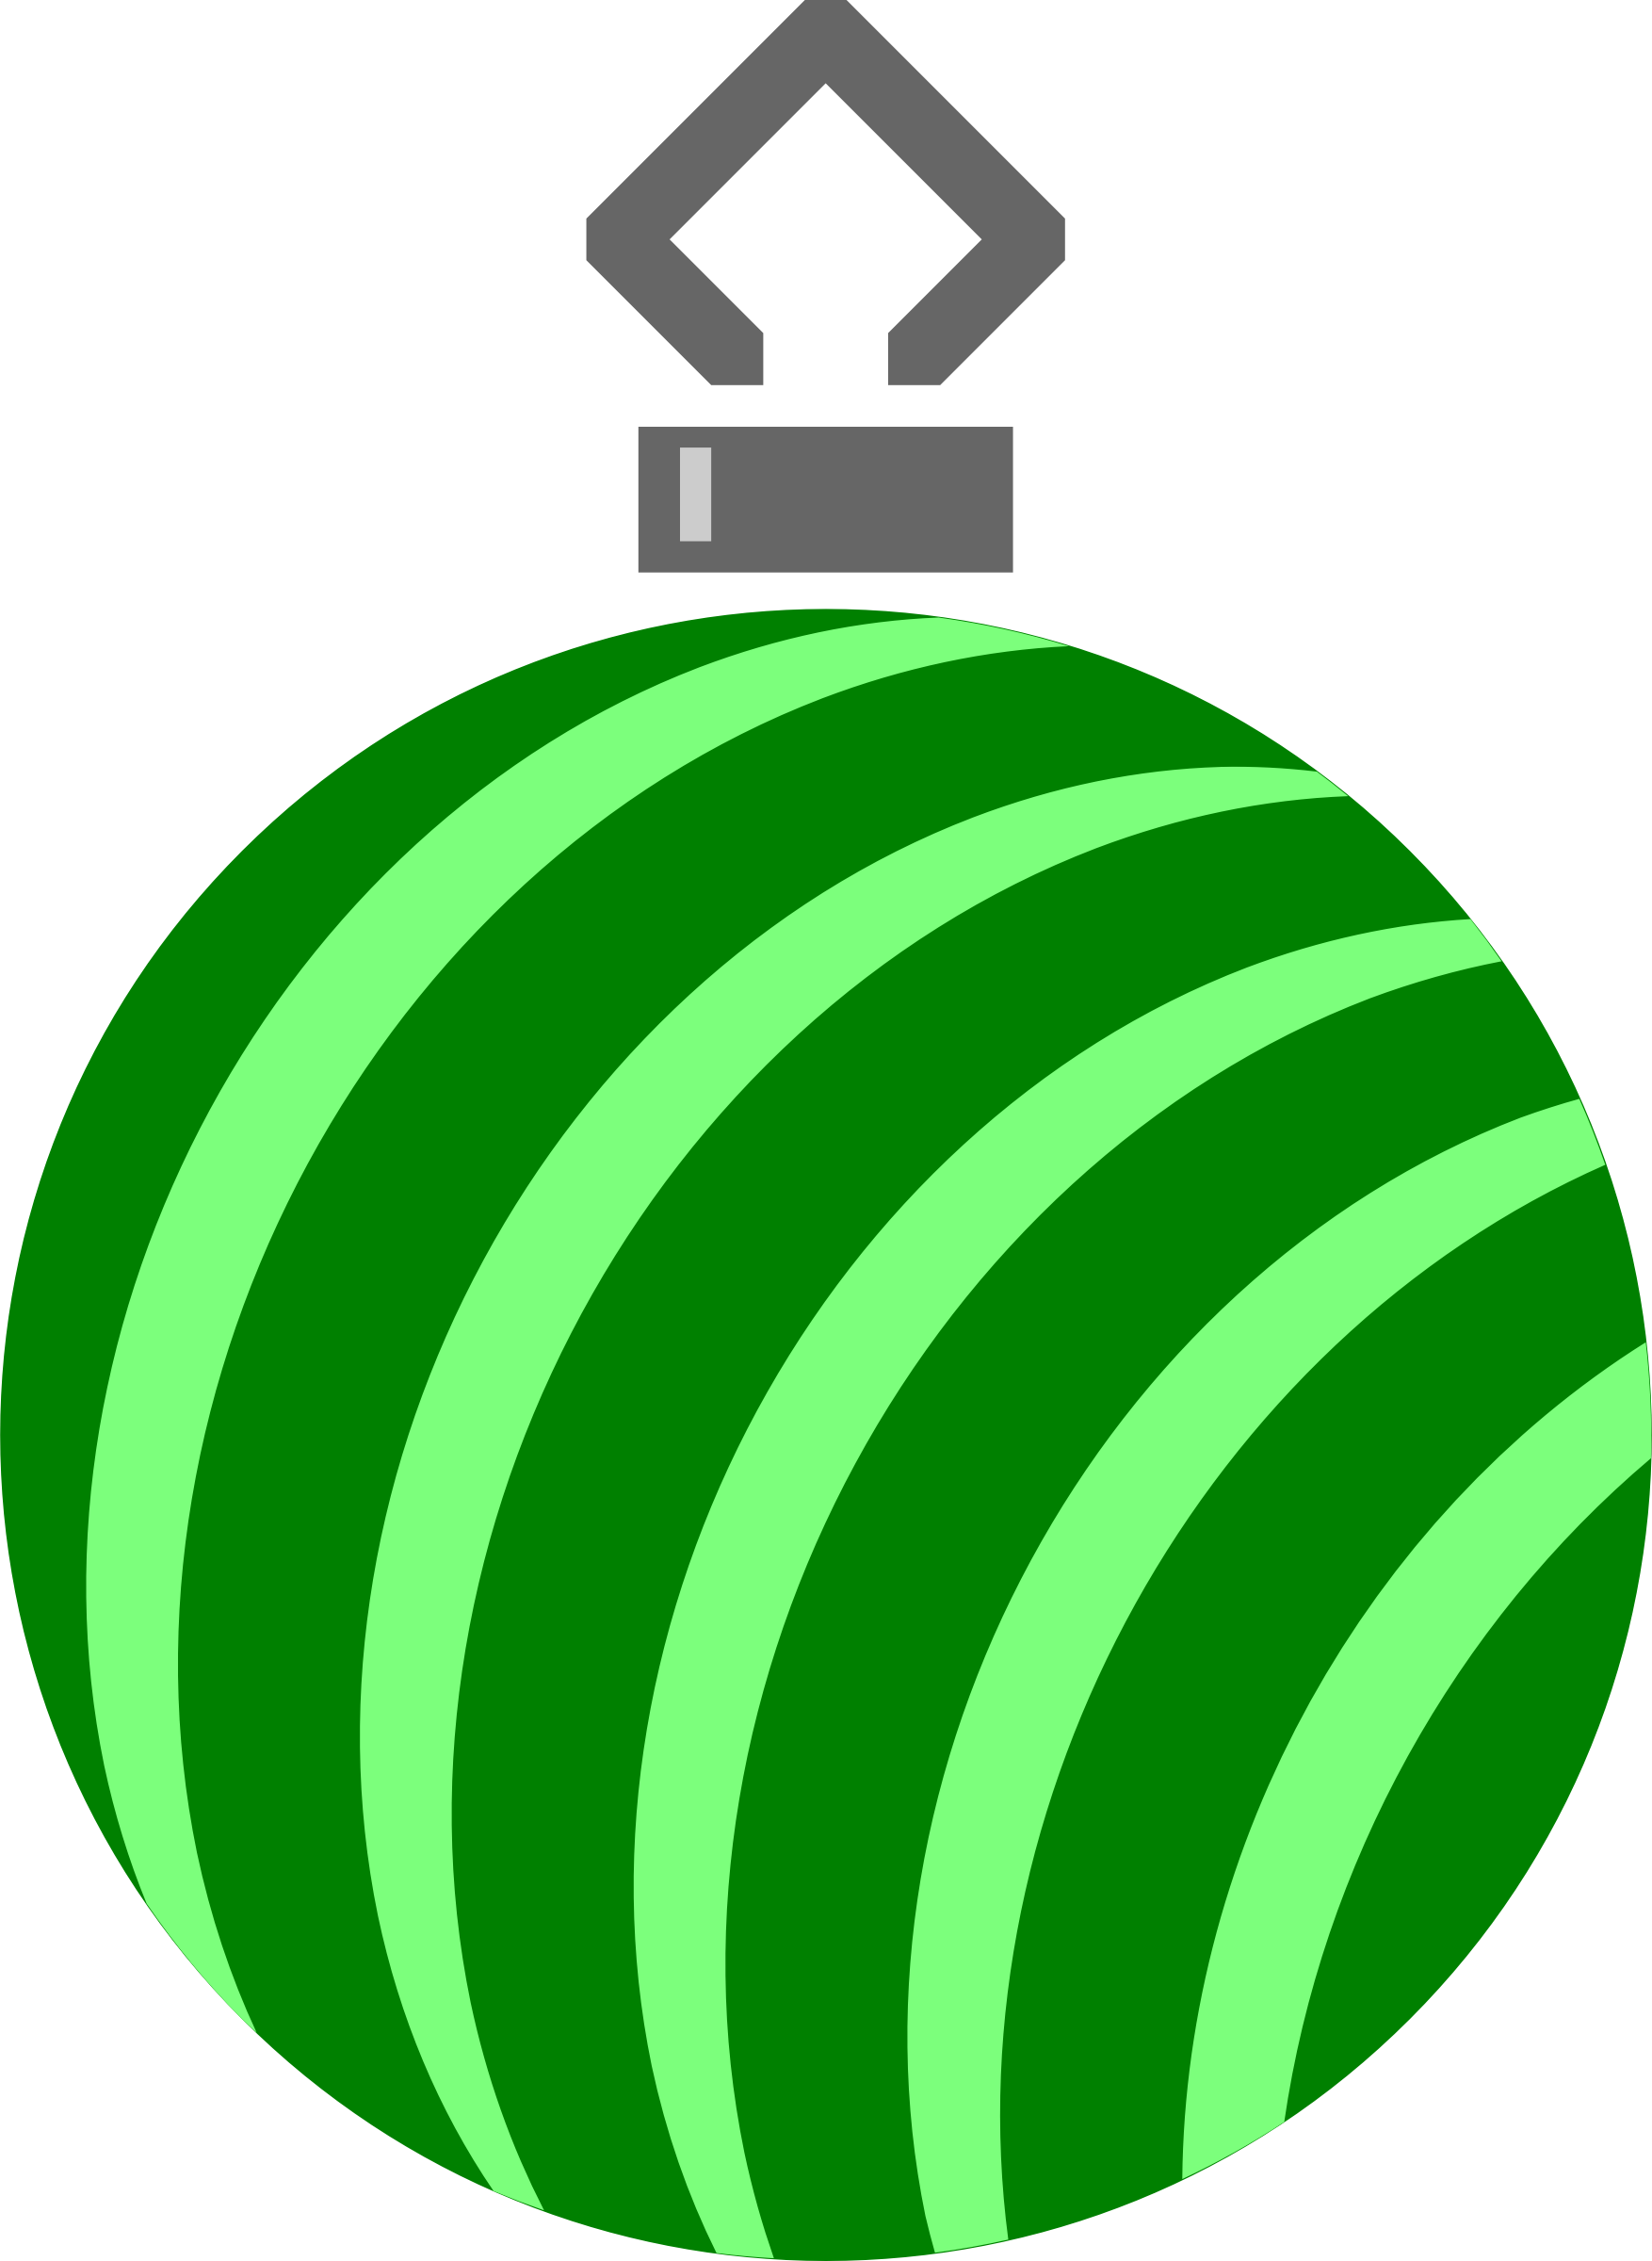 Simple tree bauble 20 (colour) by Firkin